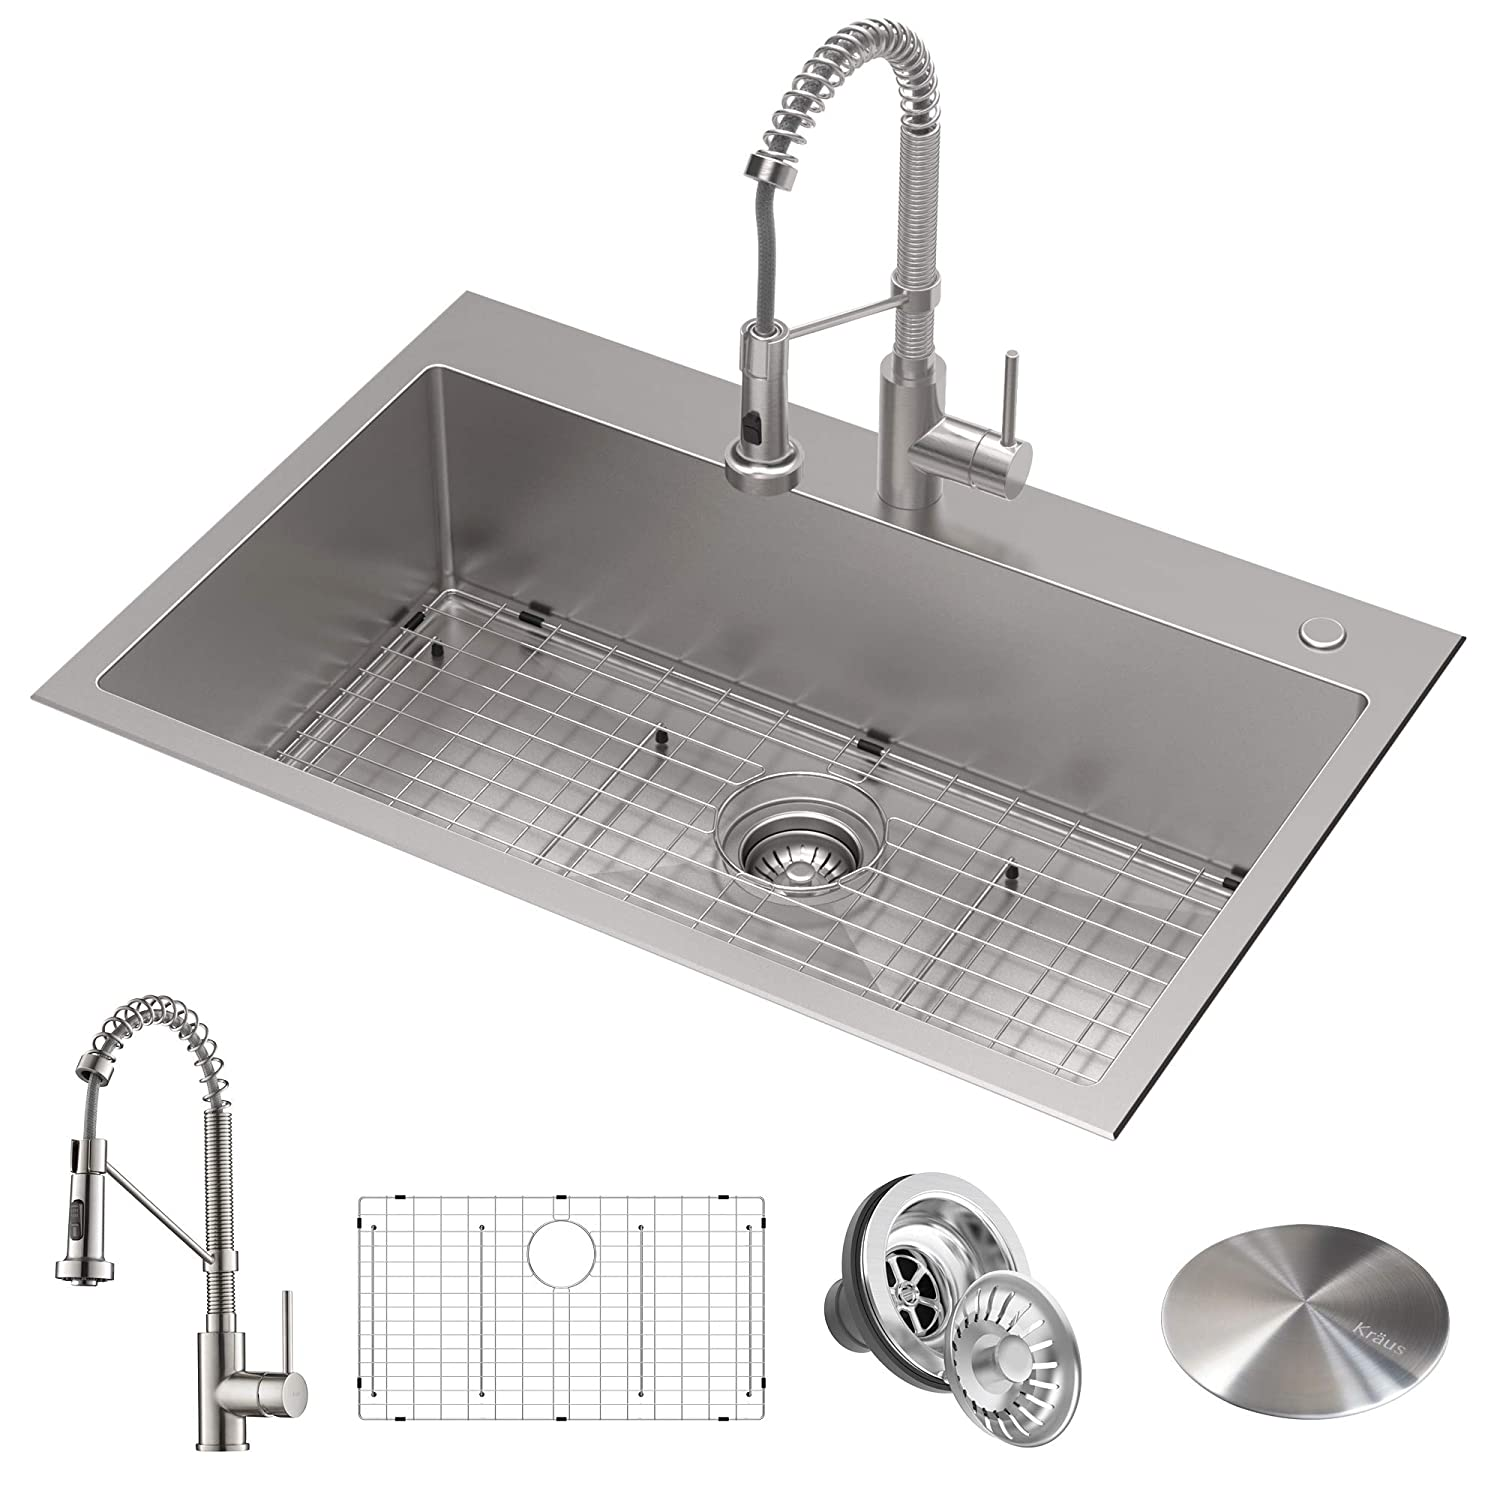 "Kraus KCA-1102 Stark Kitchen Sink and Faucet, 33""- Single Bowl"